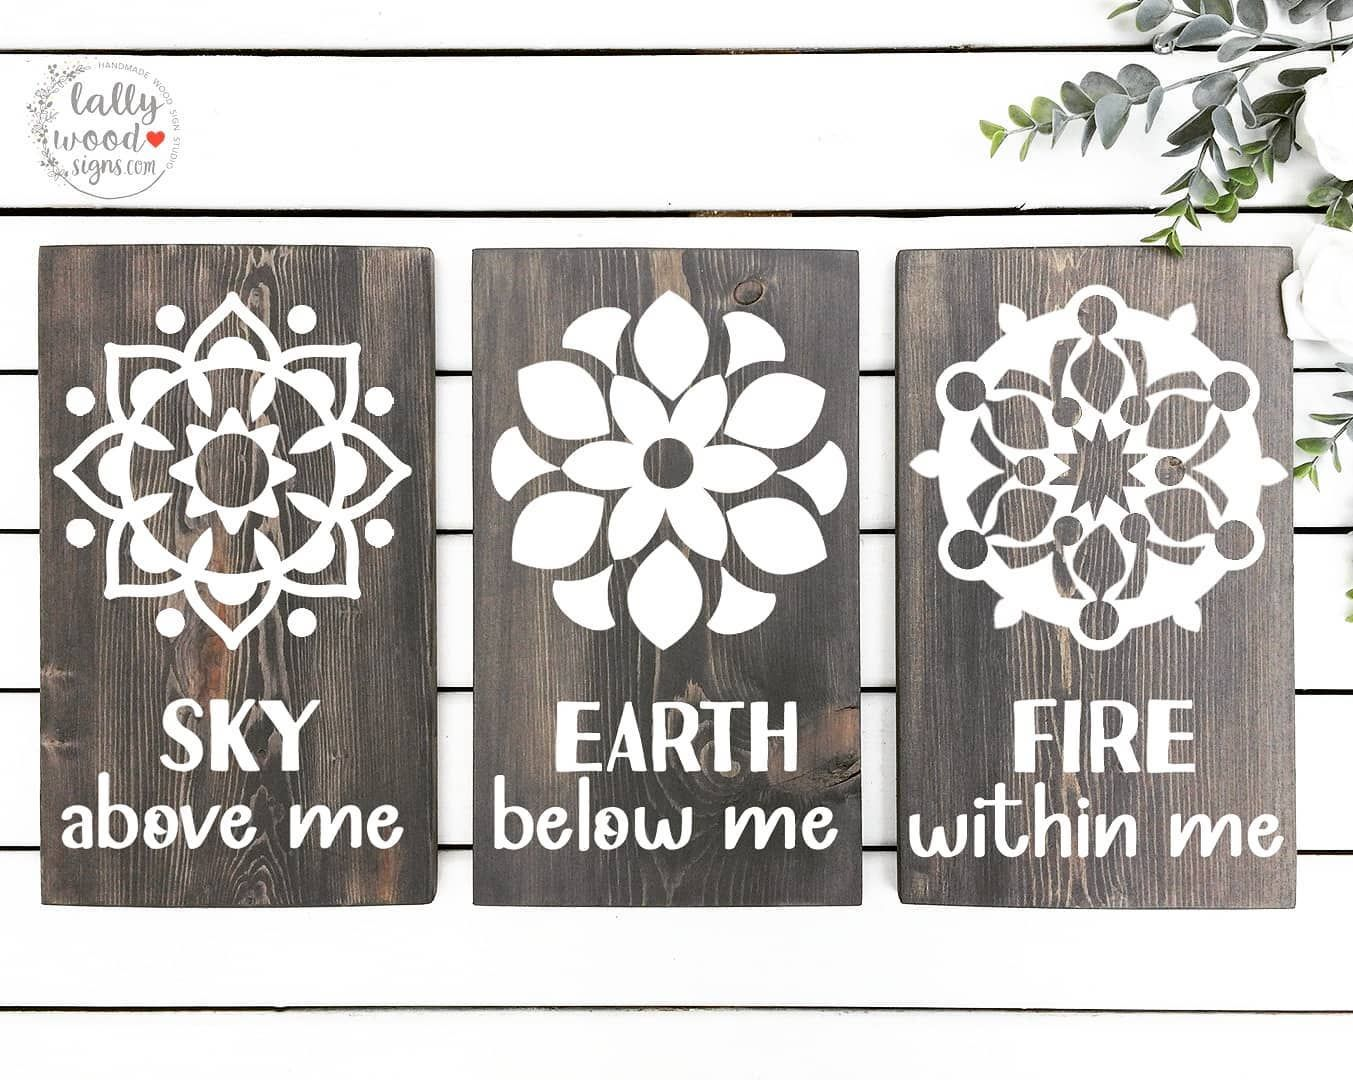 Sky above me, Earth below me, Fire within me #skyaboveme #earthbelowmeskyabovemefirewithinme #firewithinme🔥  #lallywoodsigns #woodsign #passion